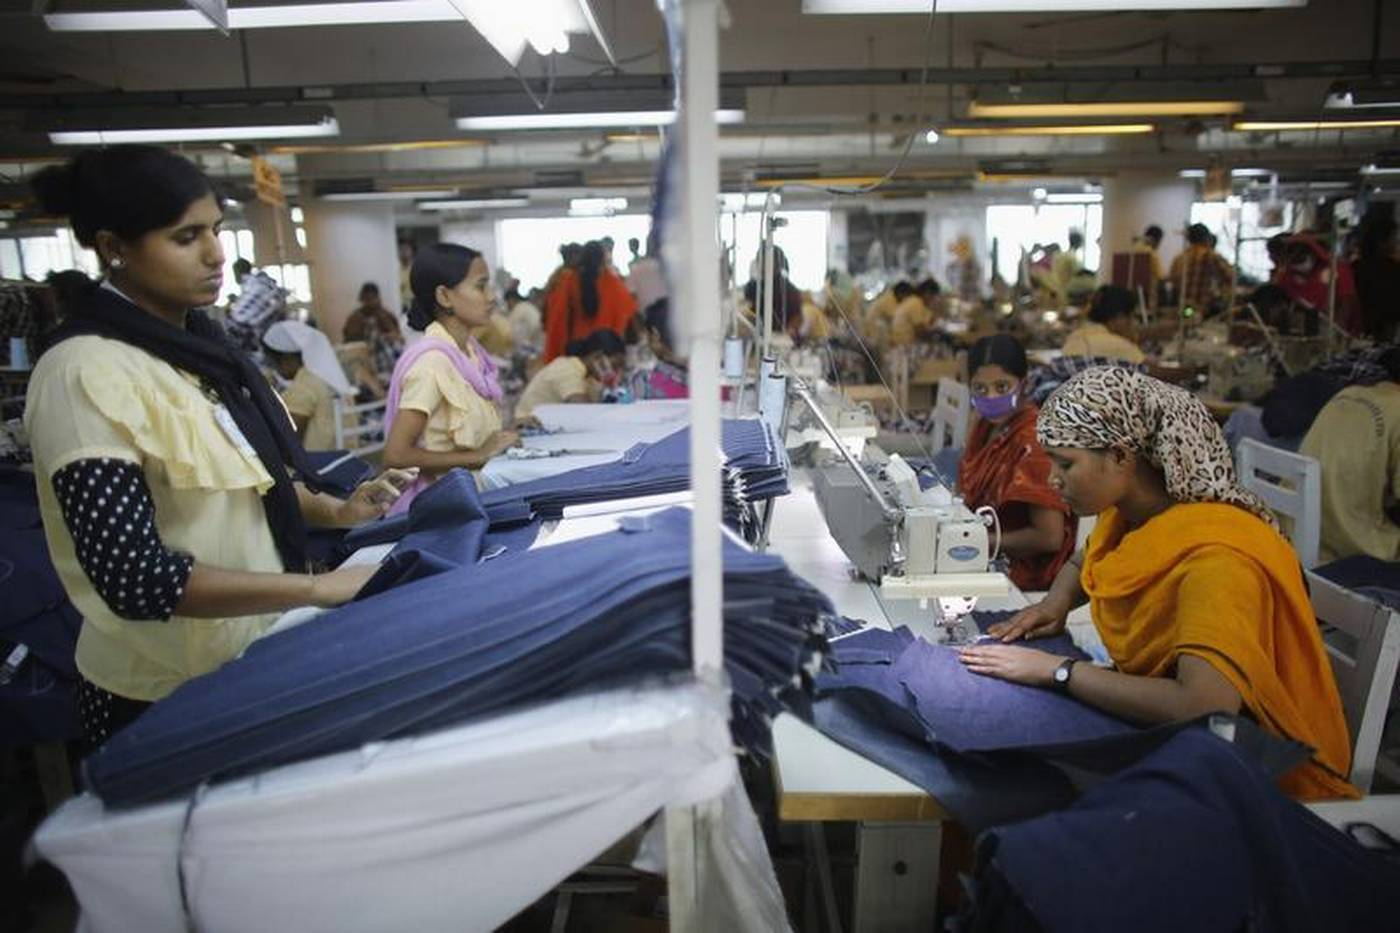 Bangladesh to digitally map supply chain to tackle garment sector abuse